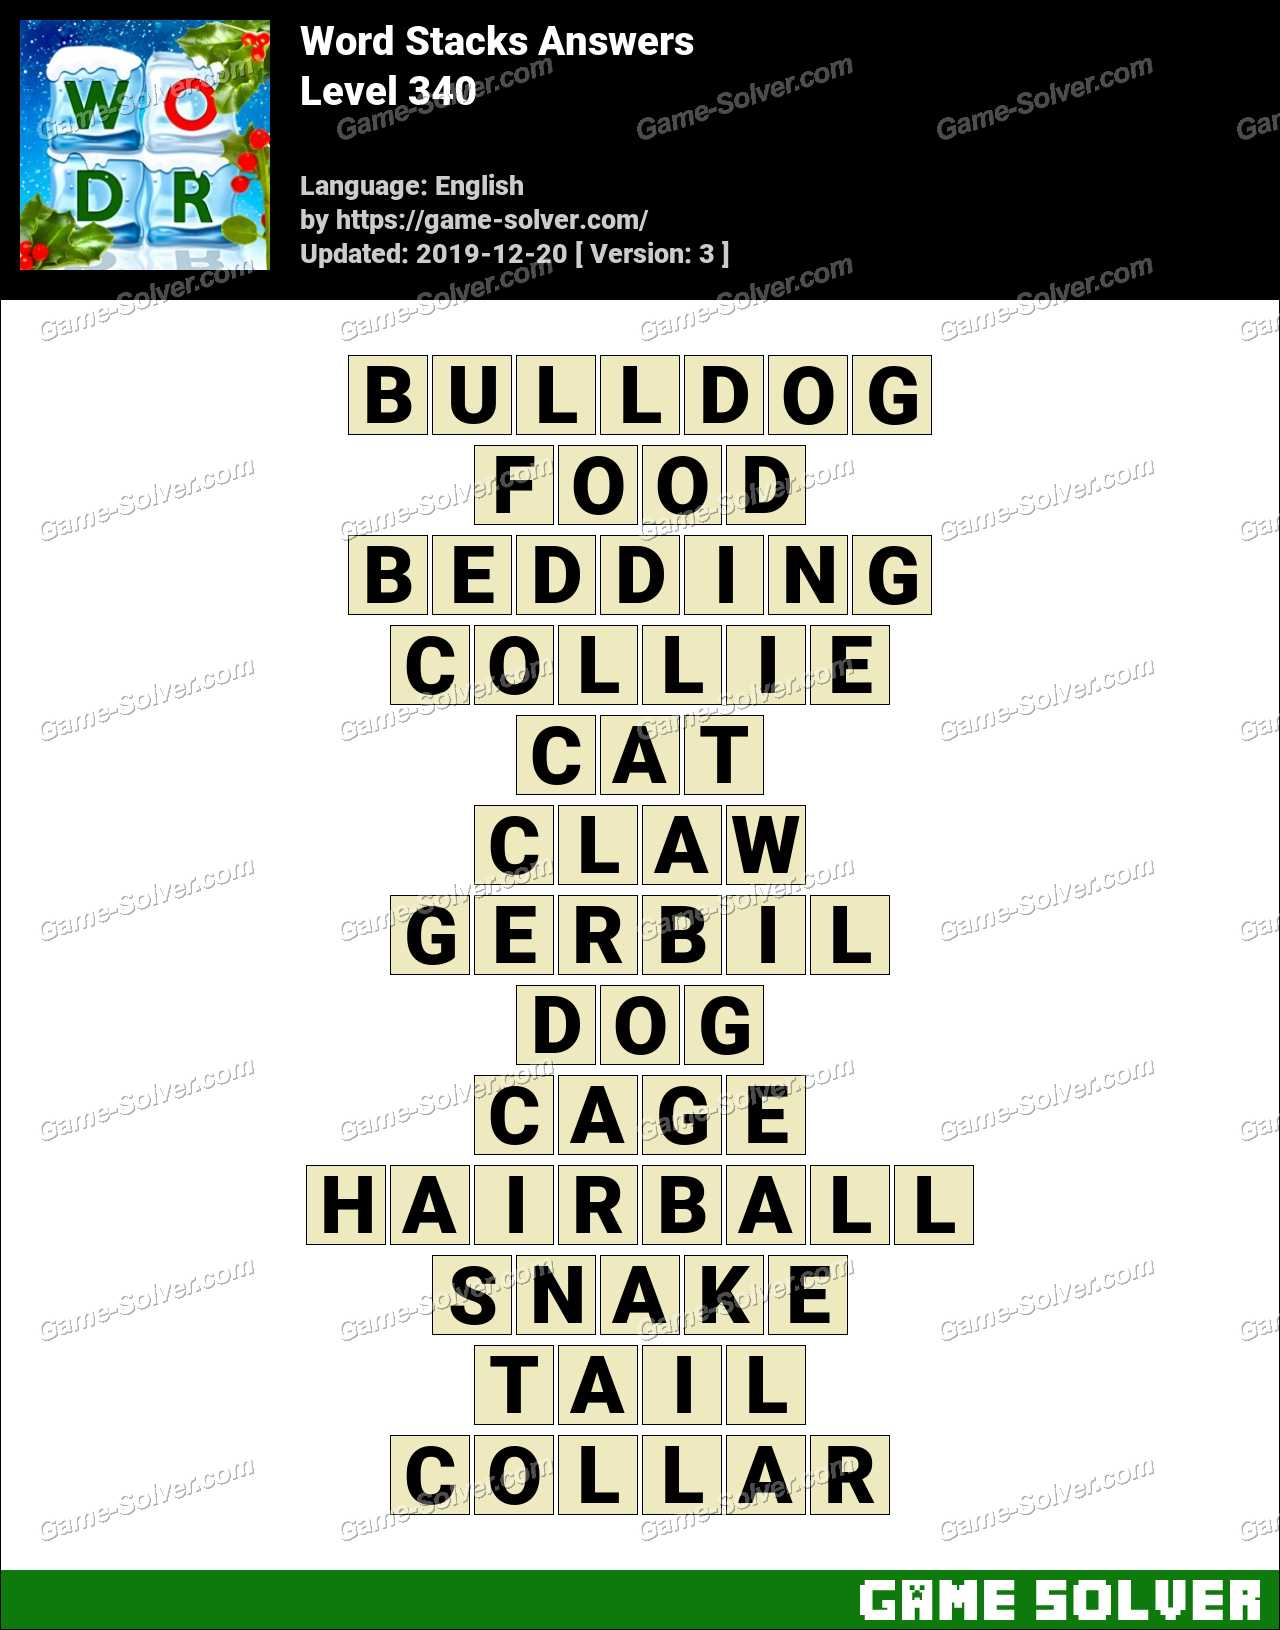 Word Stacks Level 340 Answers